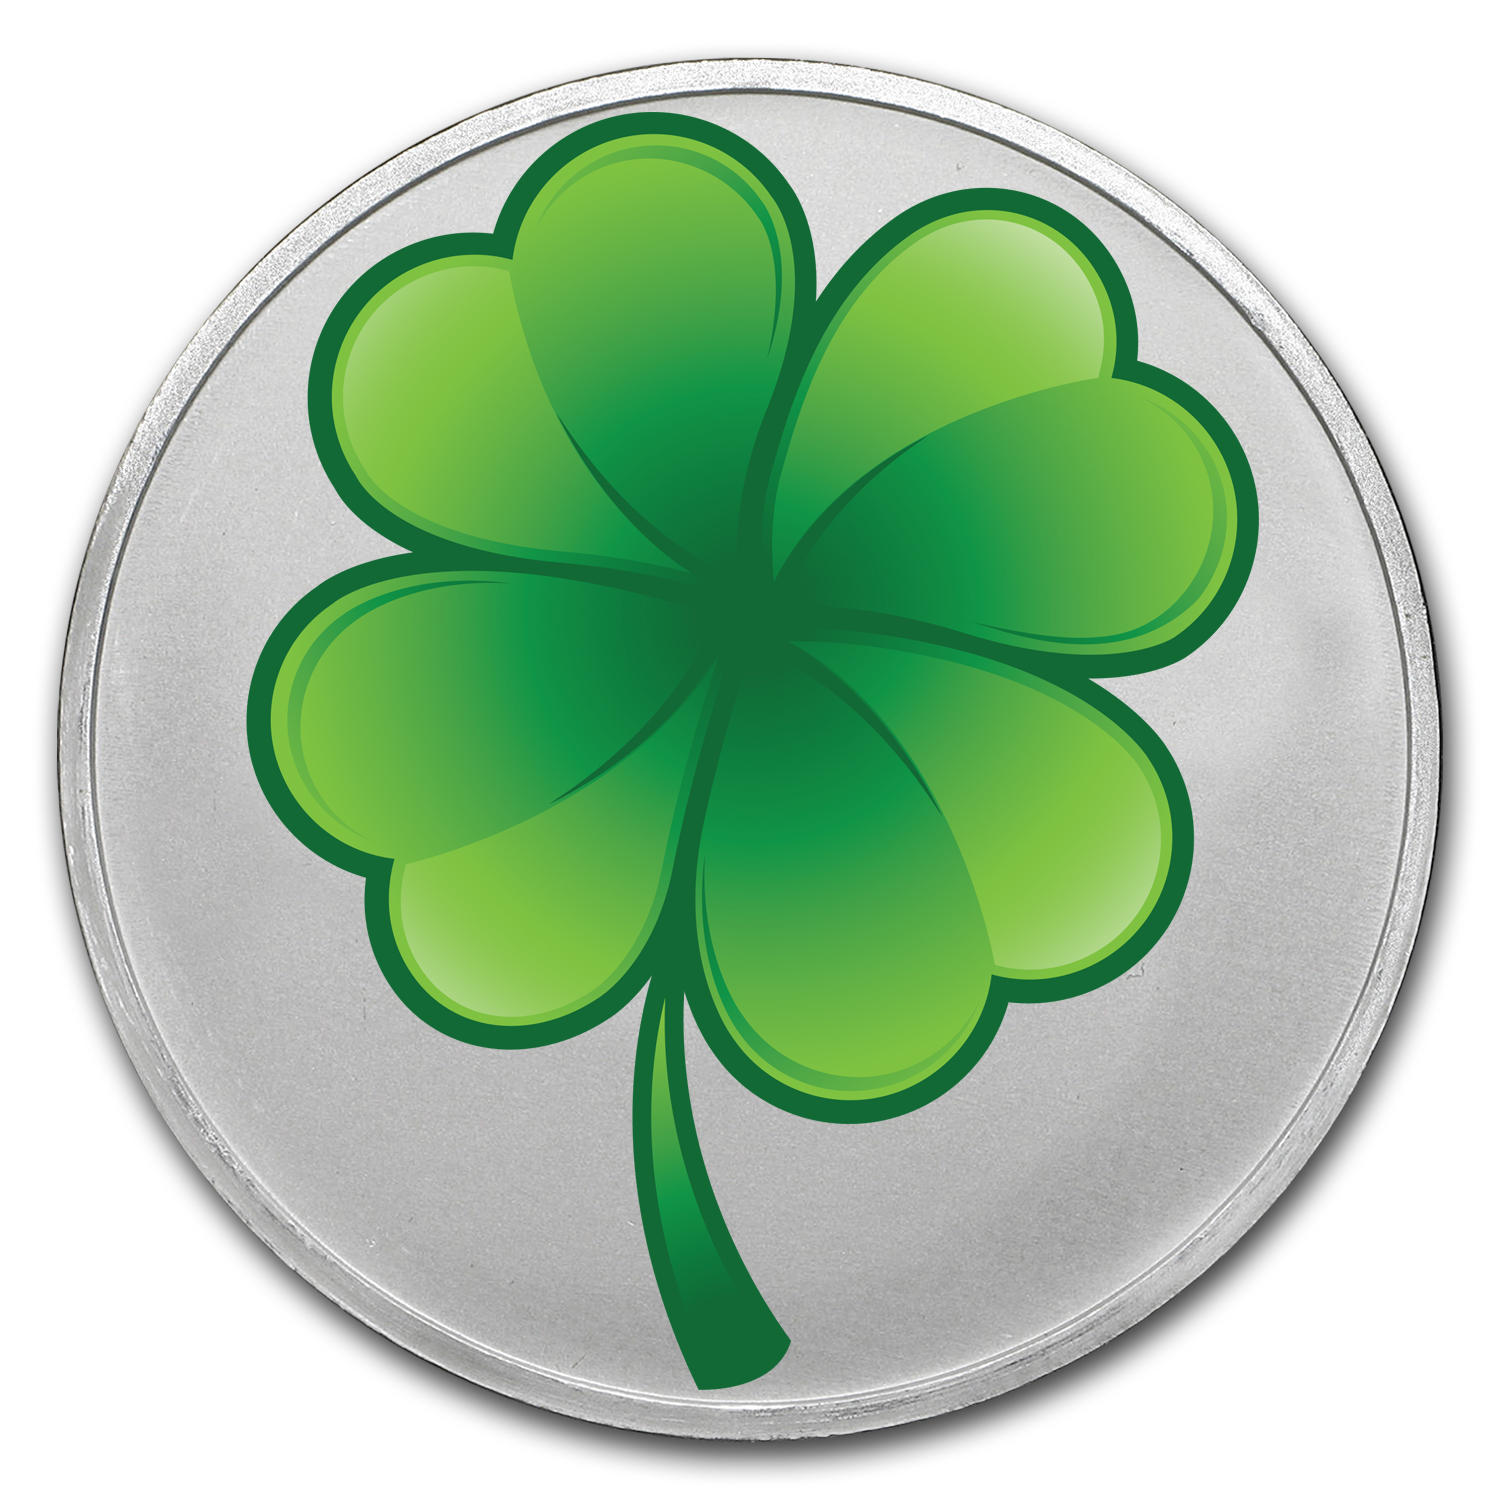 1 oz Silver Colorized Round - APMEX (4-Leaf Clover)